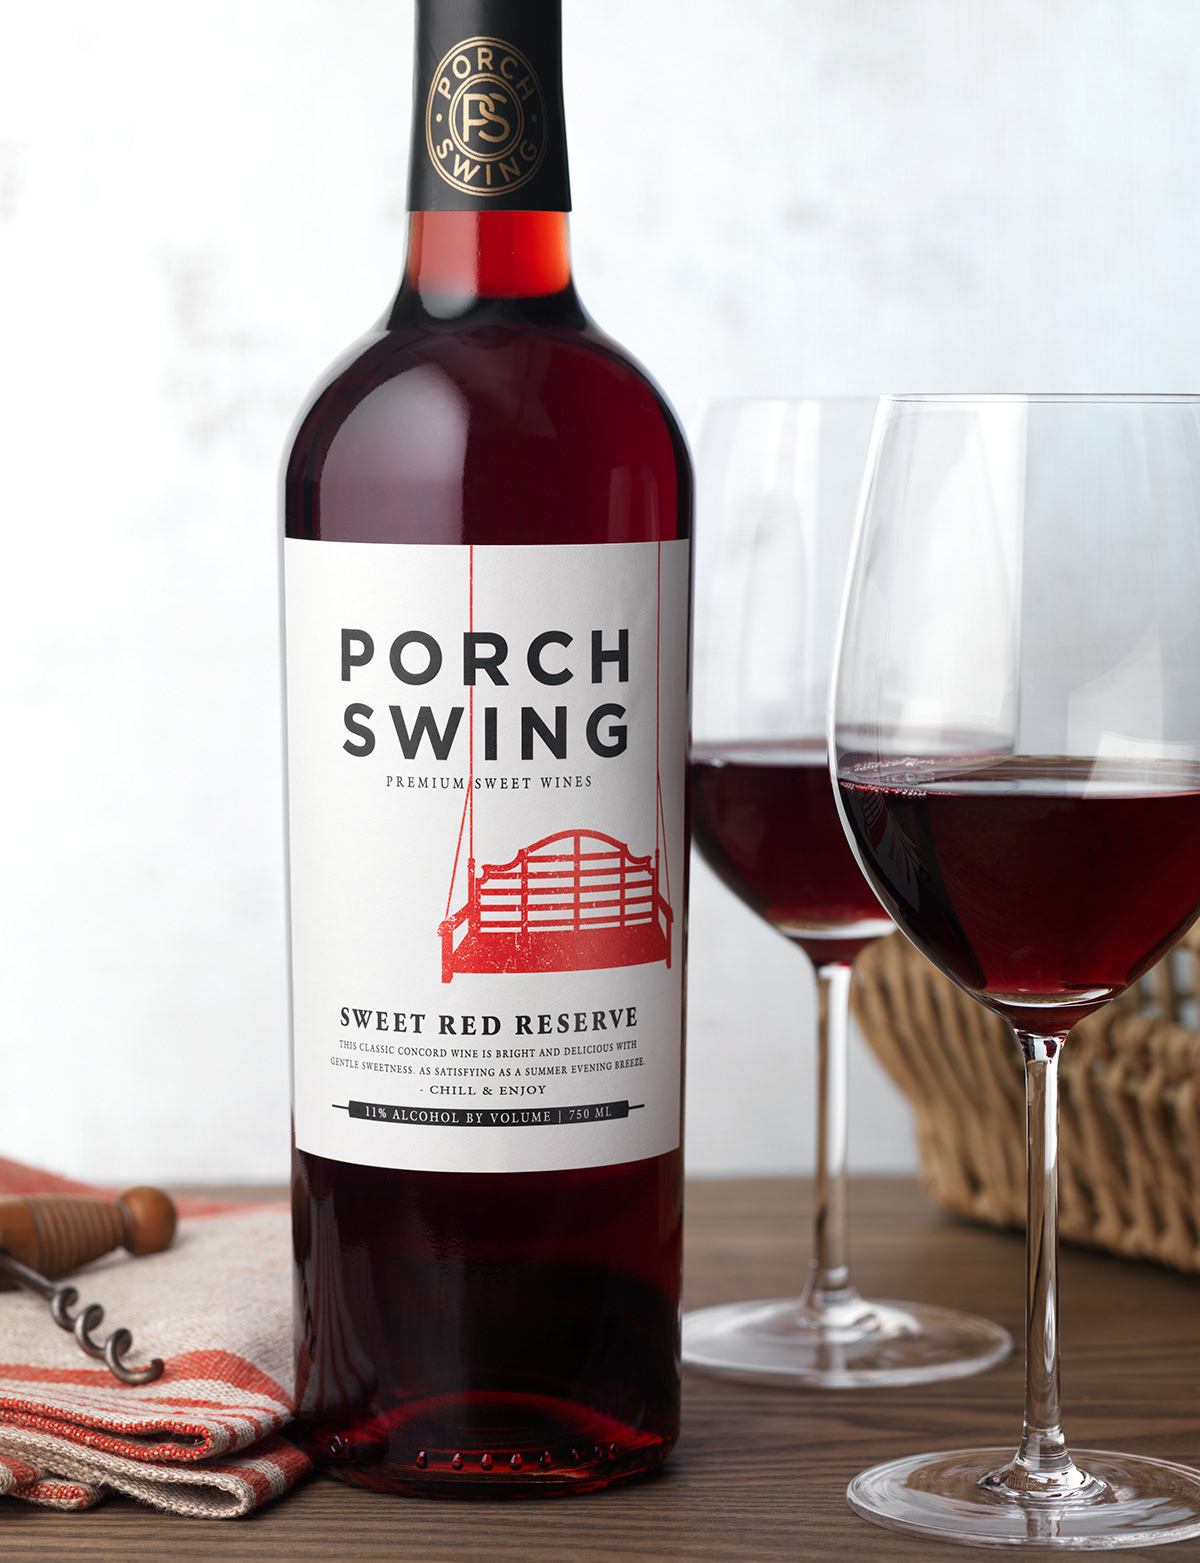 Porch Swing (Oliver Winery) Wine Packaging/logo Design On Pertaining To Vineyard Porch Swings (Image 19 of 25)